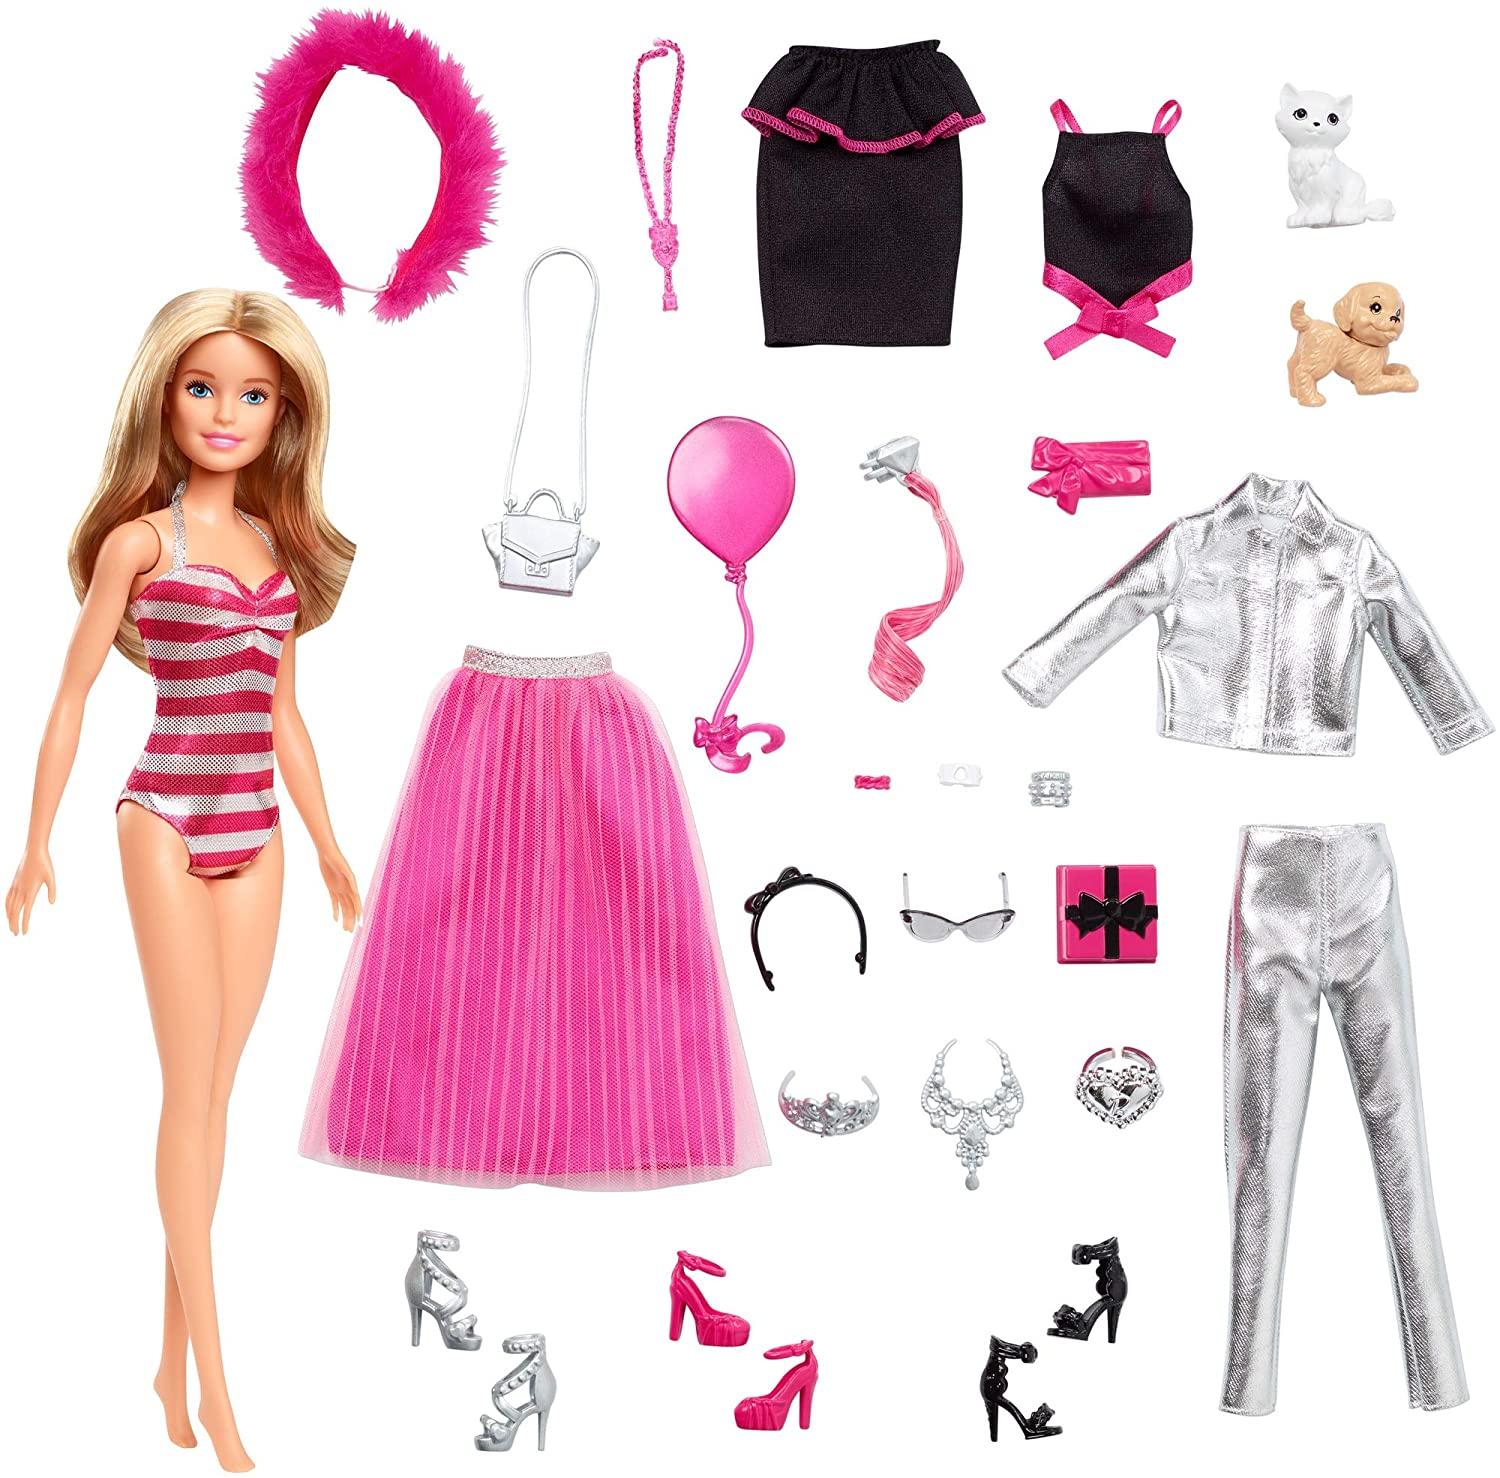 Inhalt Barbie Adventskalender 2019